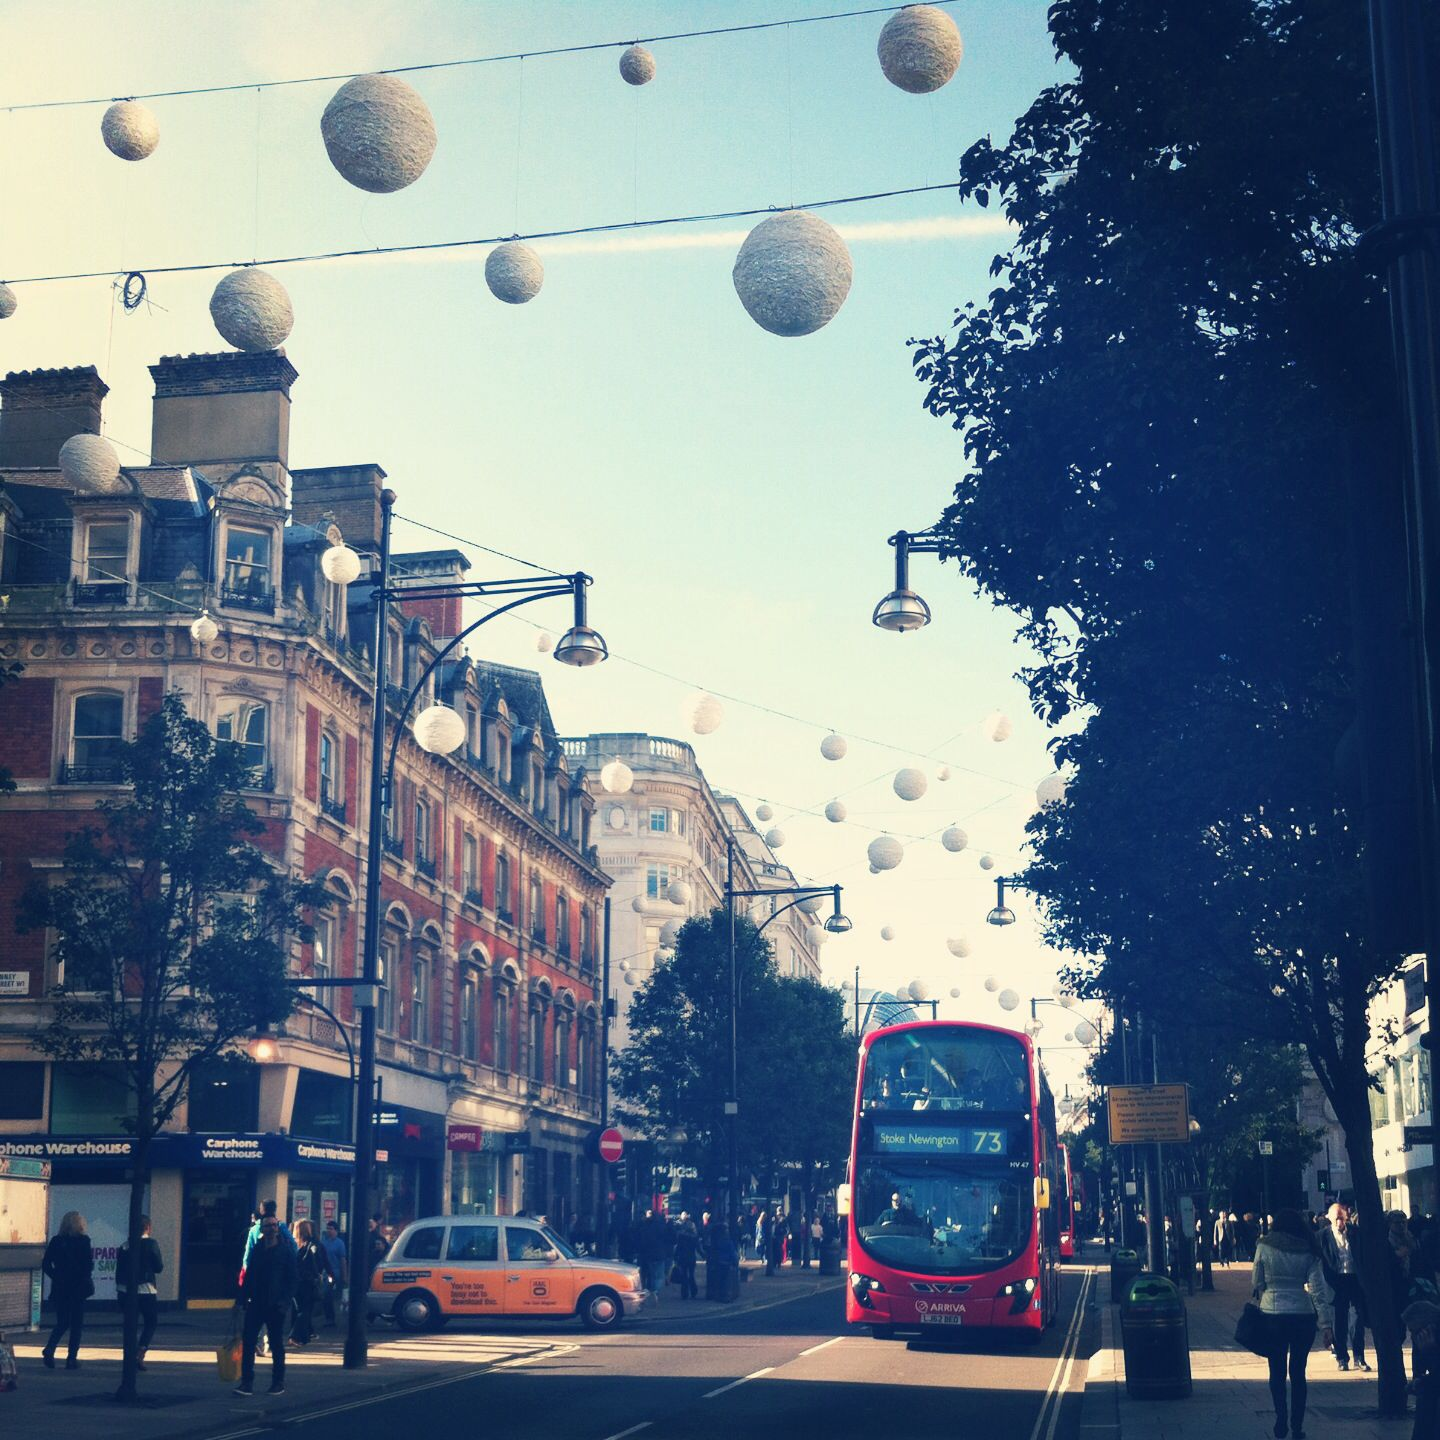 Oxford street London is looking beautiful today with the perfect weather and Christmas decorations!